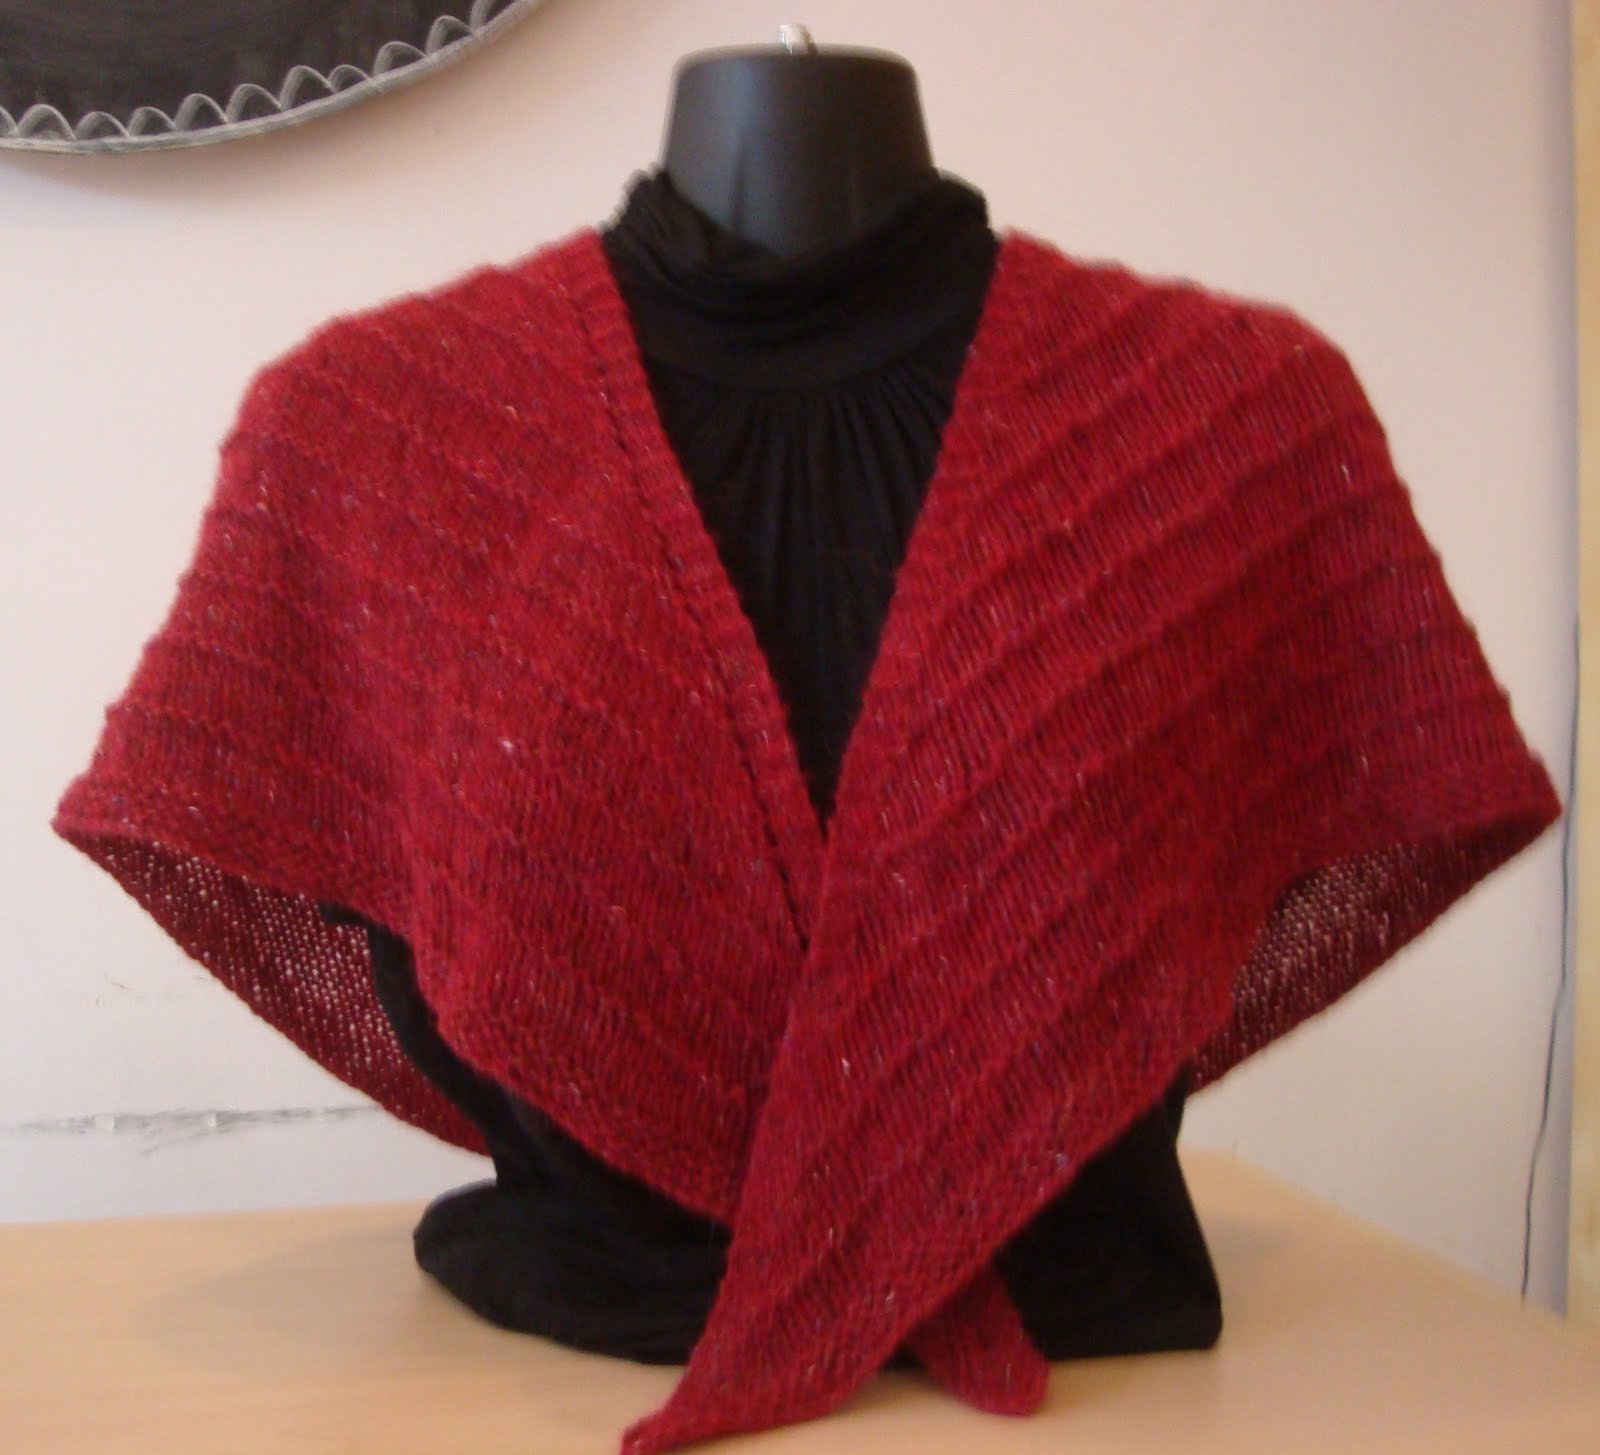 Shawl Knitting Pattern : Triangle Shawl Free Pattern   Design Patterns